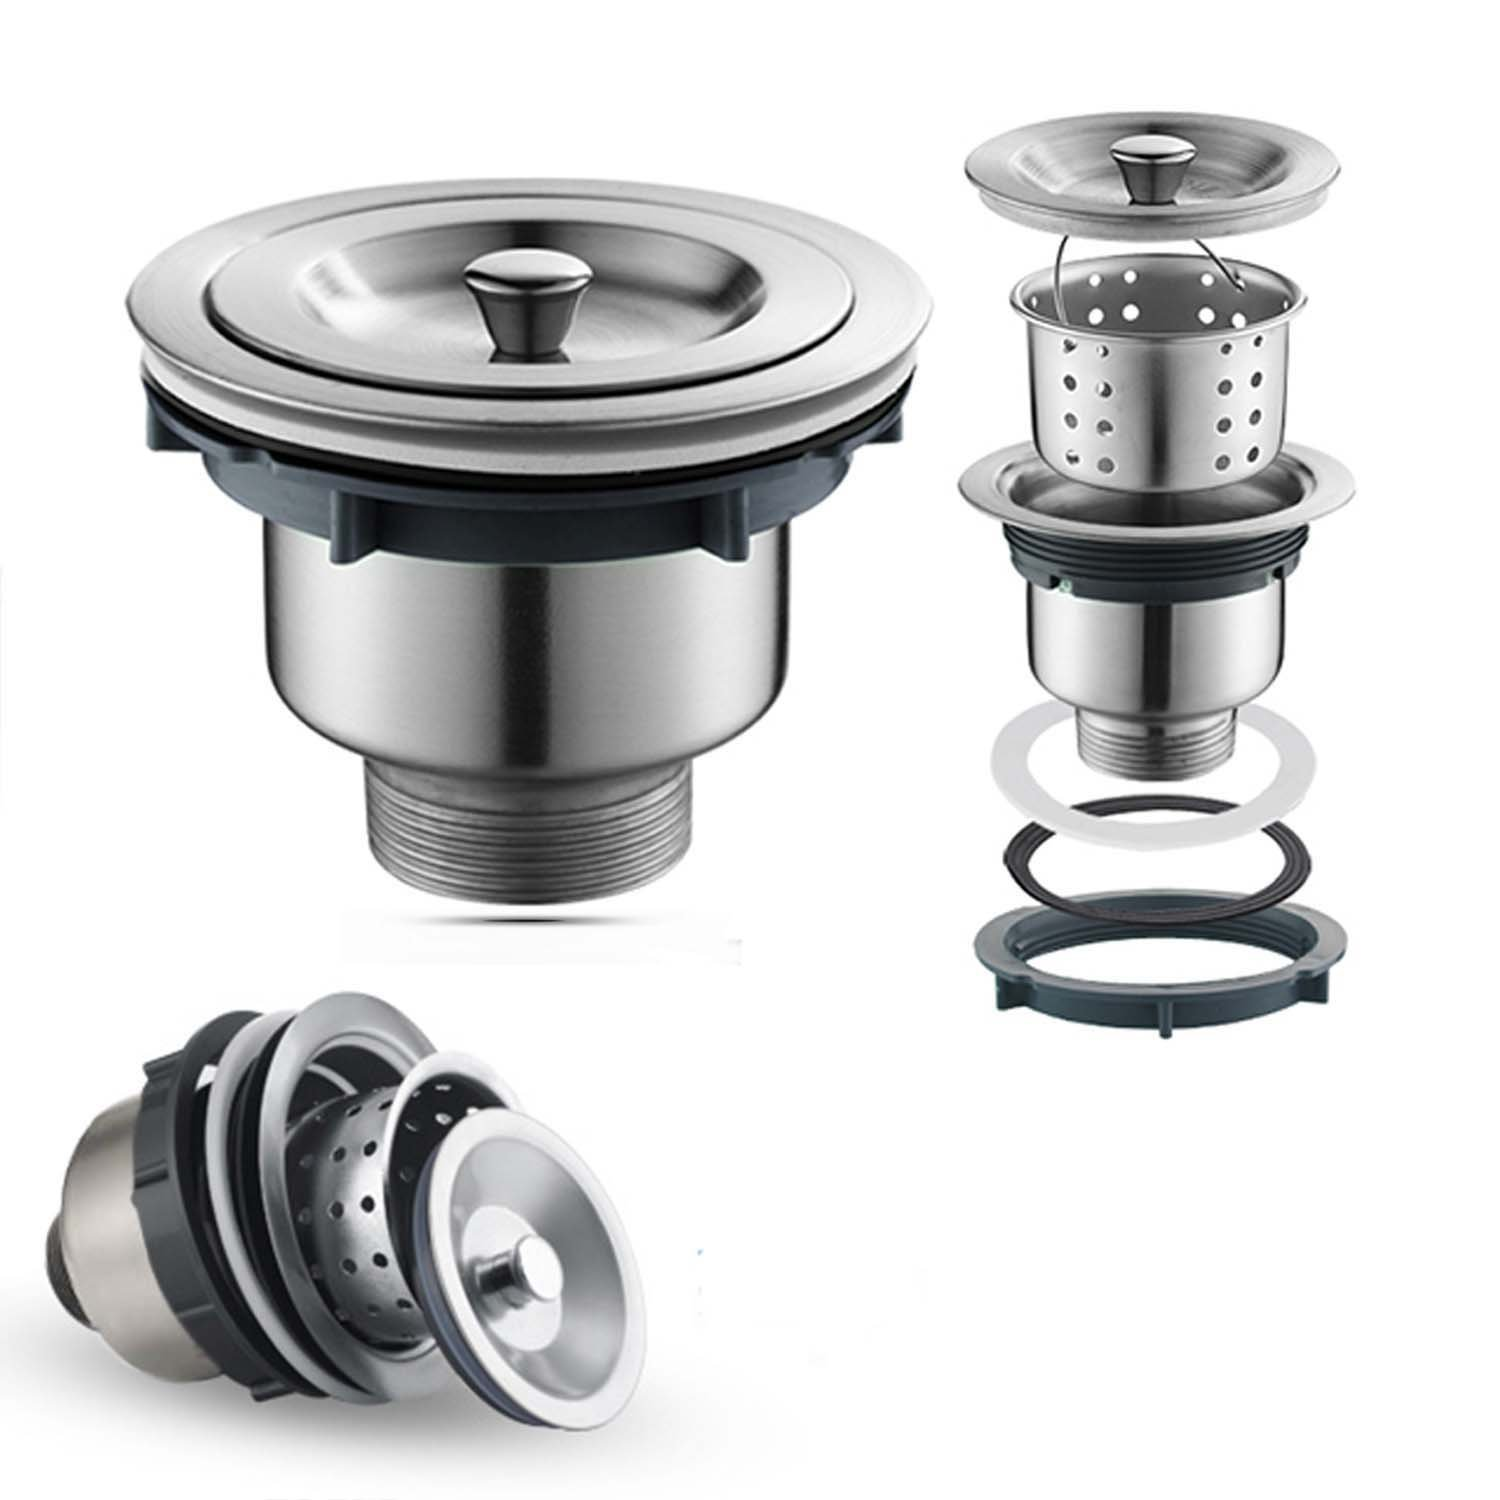 Oakland 3-1/2 inch Kitchen Sink Strainer with Removable Deep Waste Basket/Drain Strainer Assembly/Sealing Lid, Stainless Steel